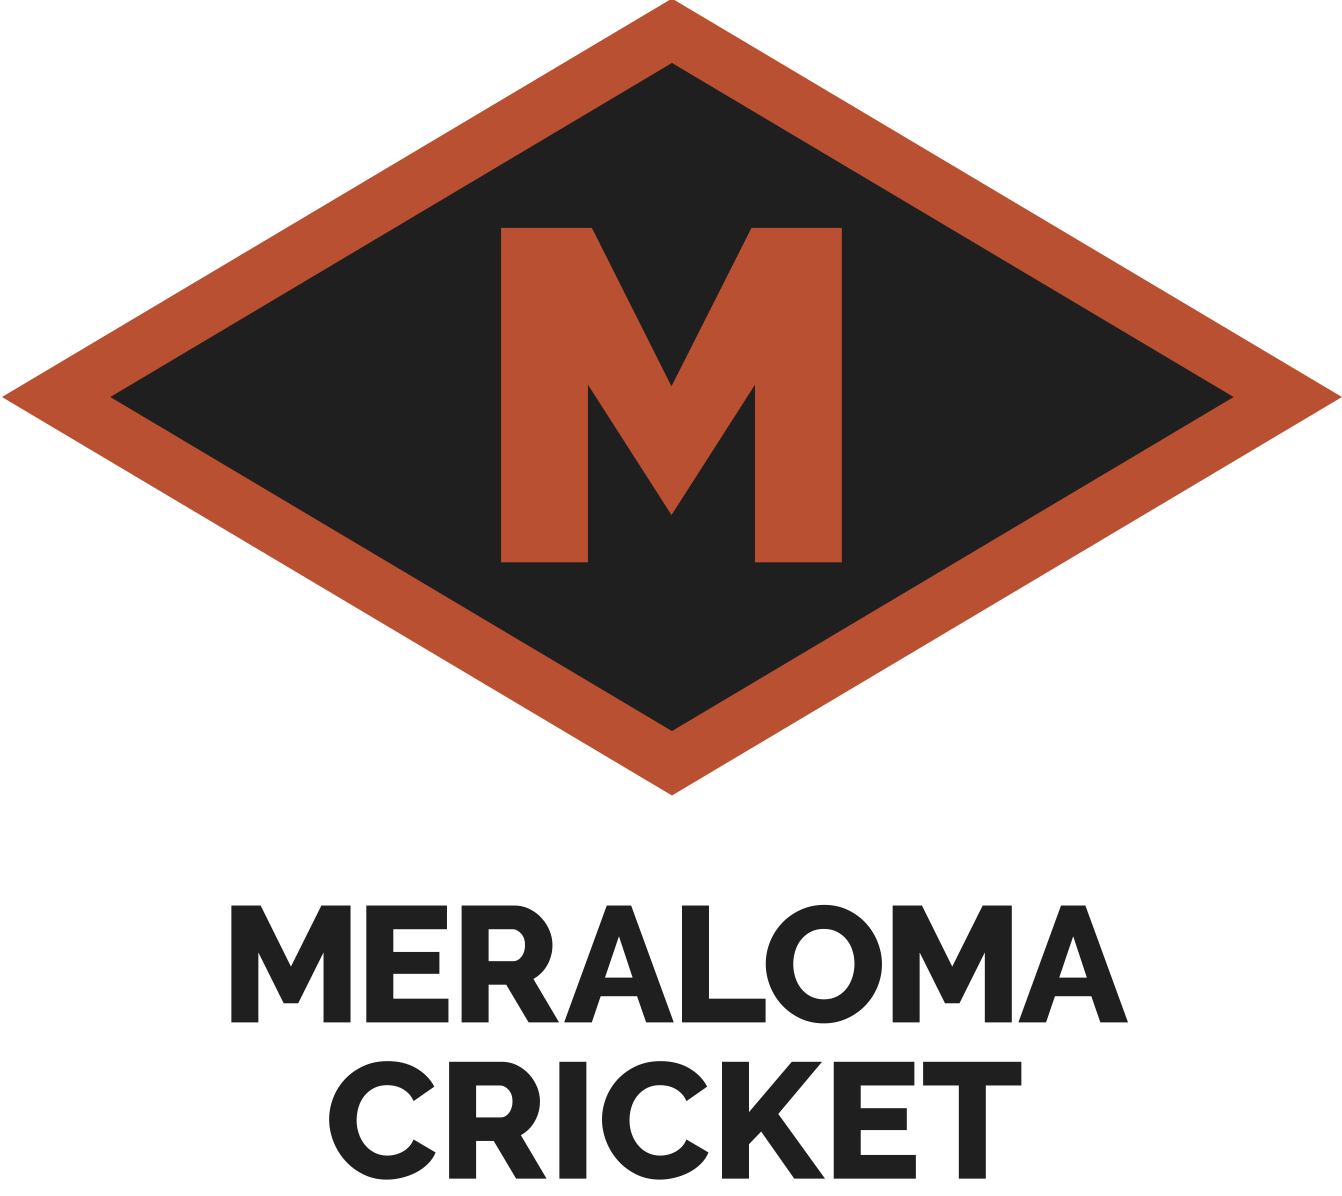 Meraloma Cricket Club